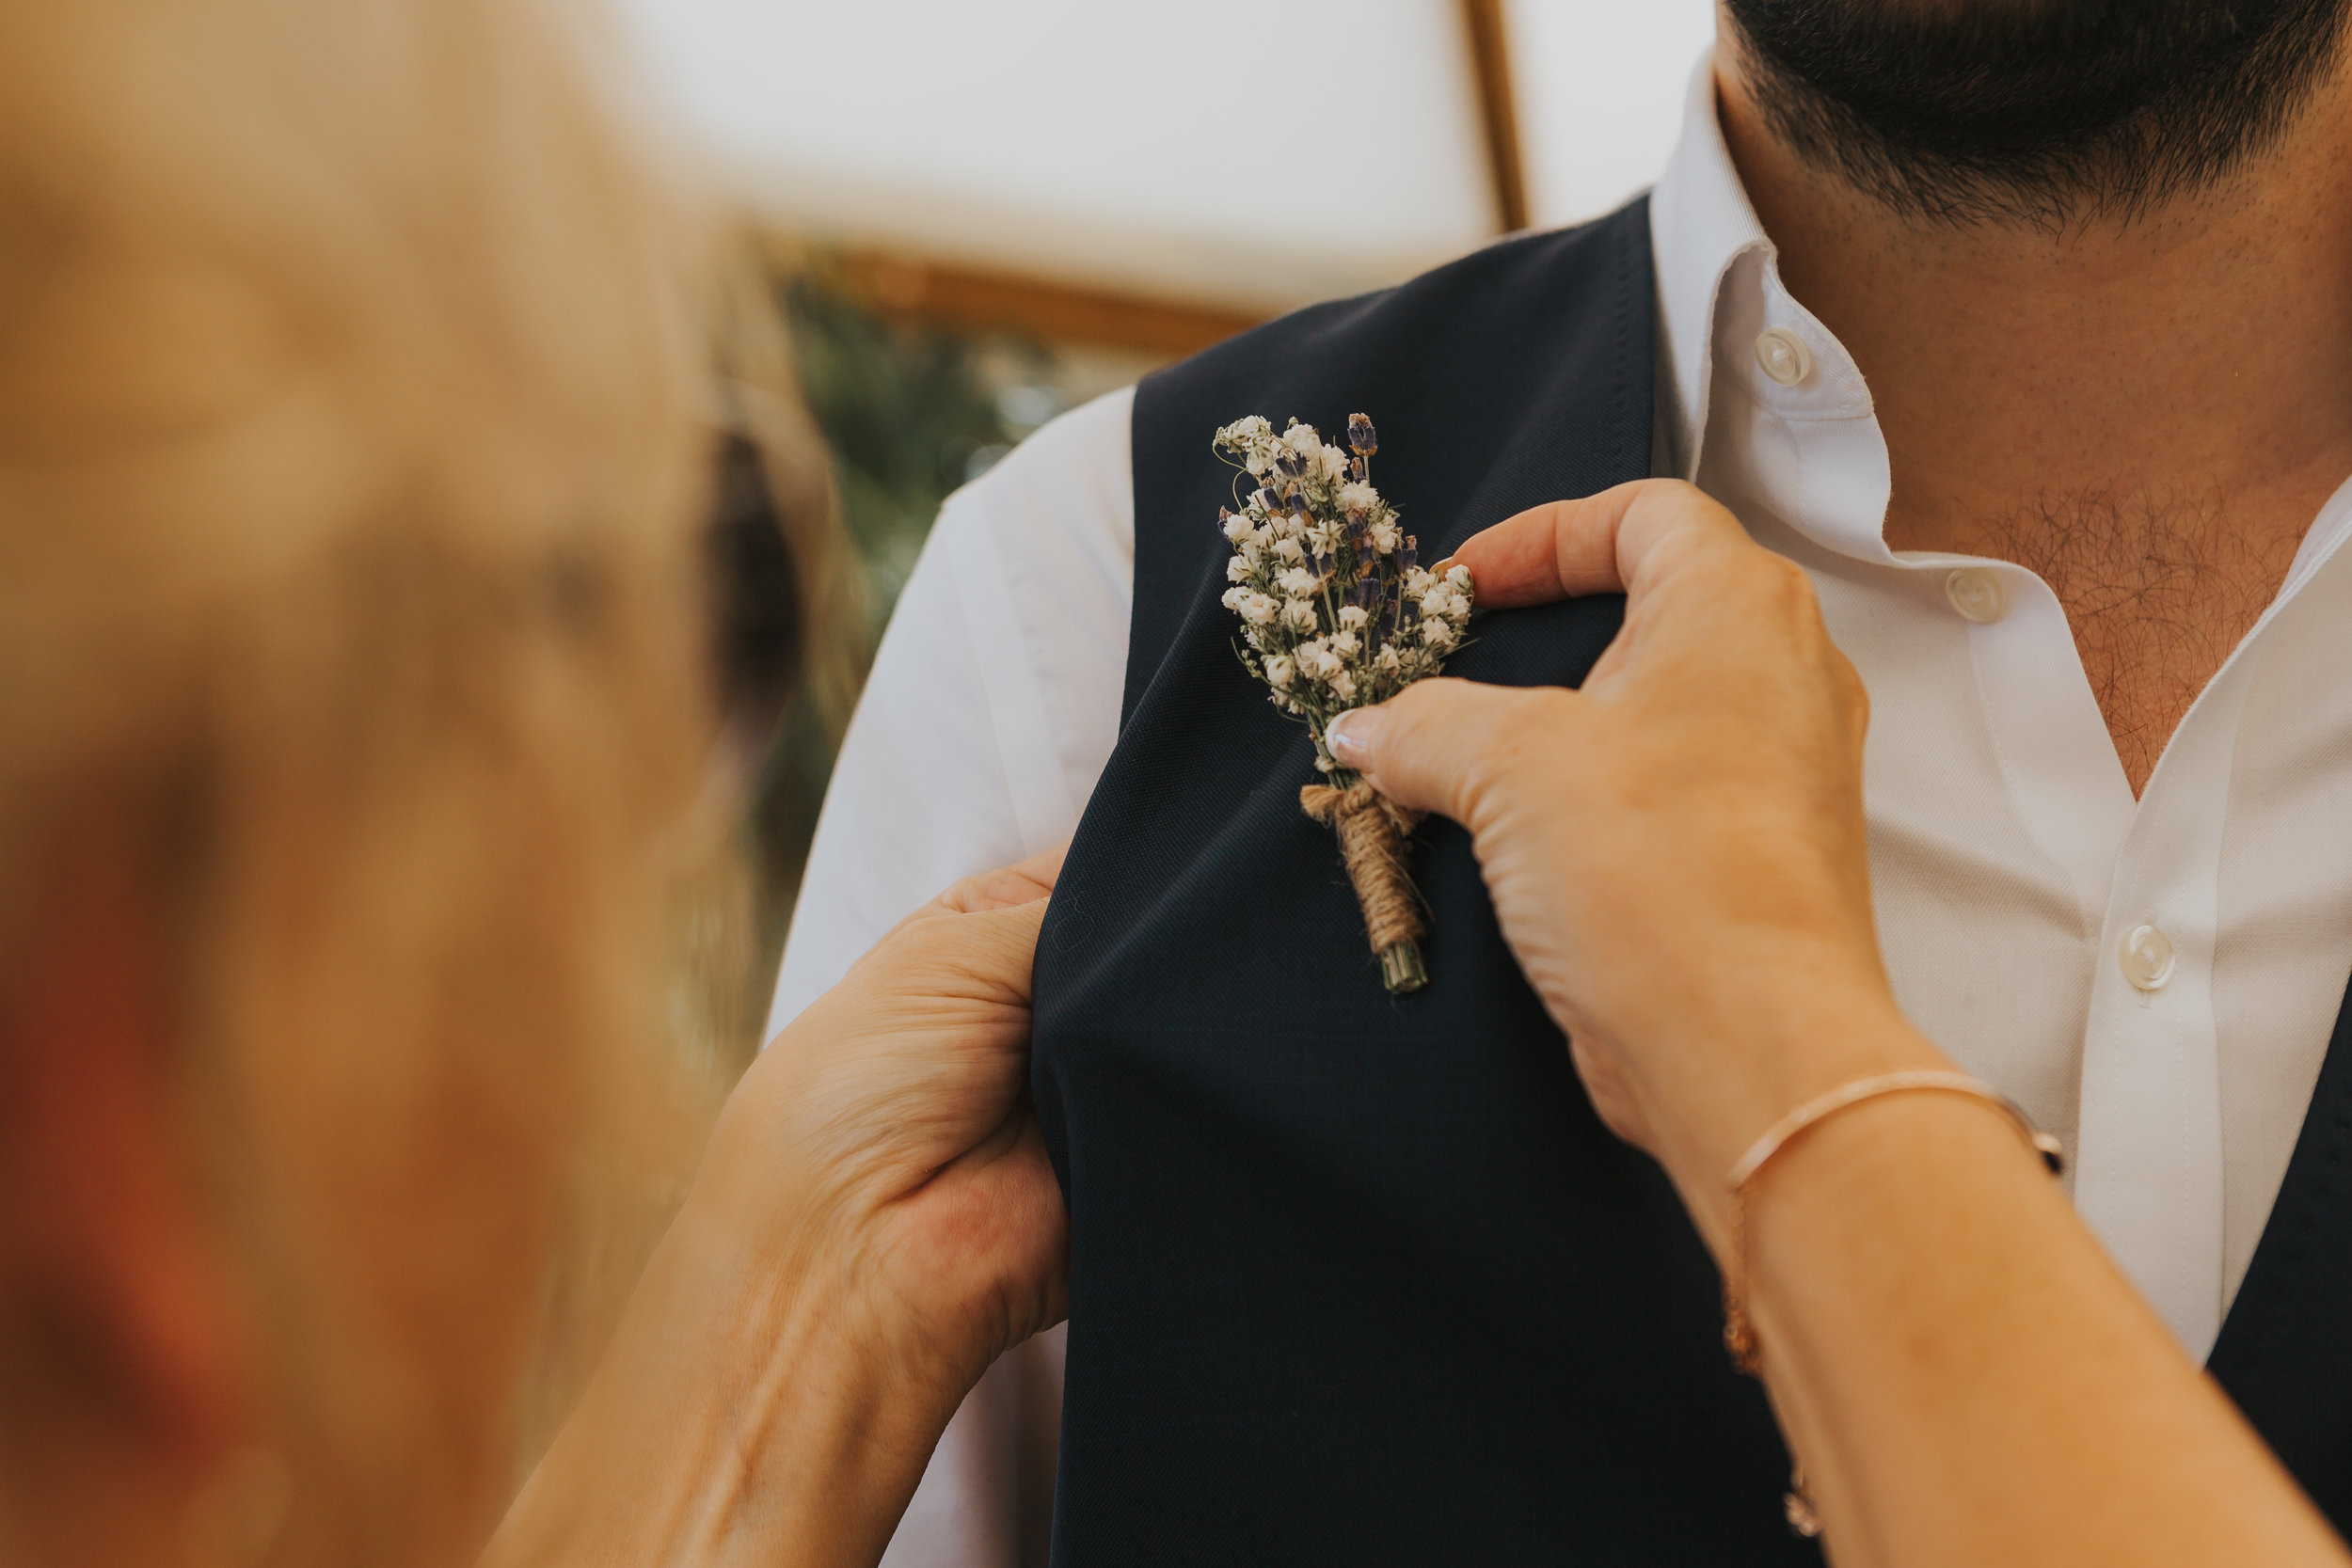 Groom Detail and Inspiration for the Alternative Wedding - Claire Basiuk Photography - 03.jpg